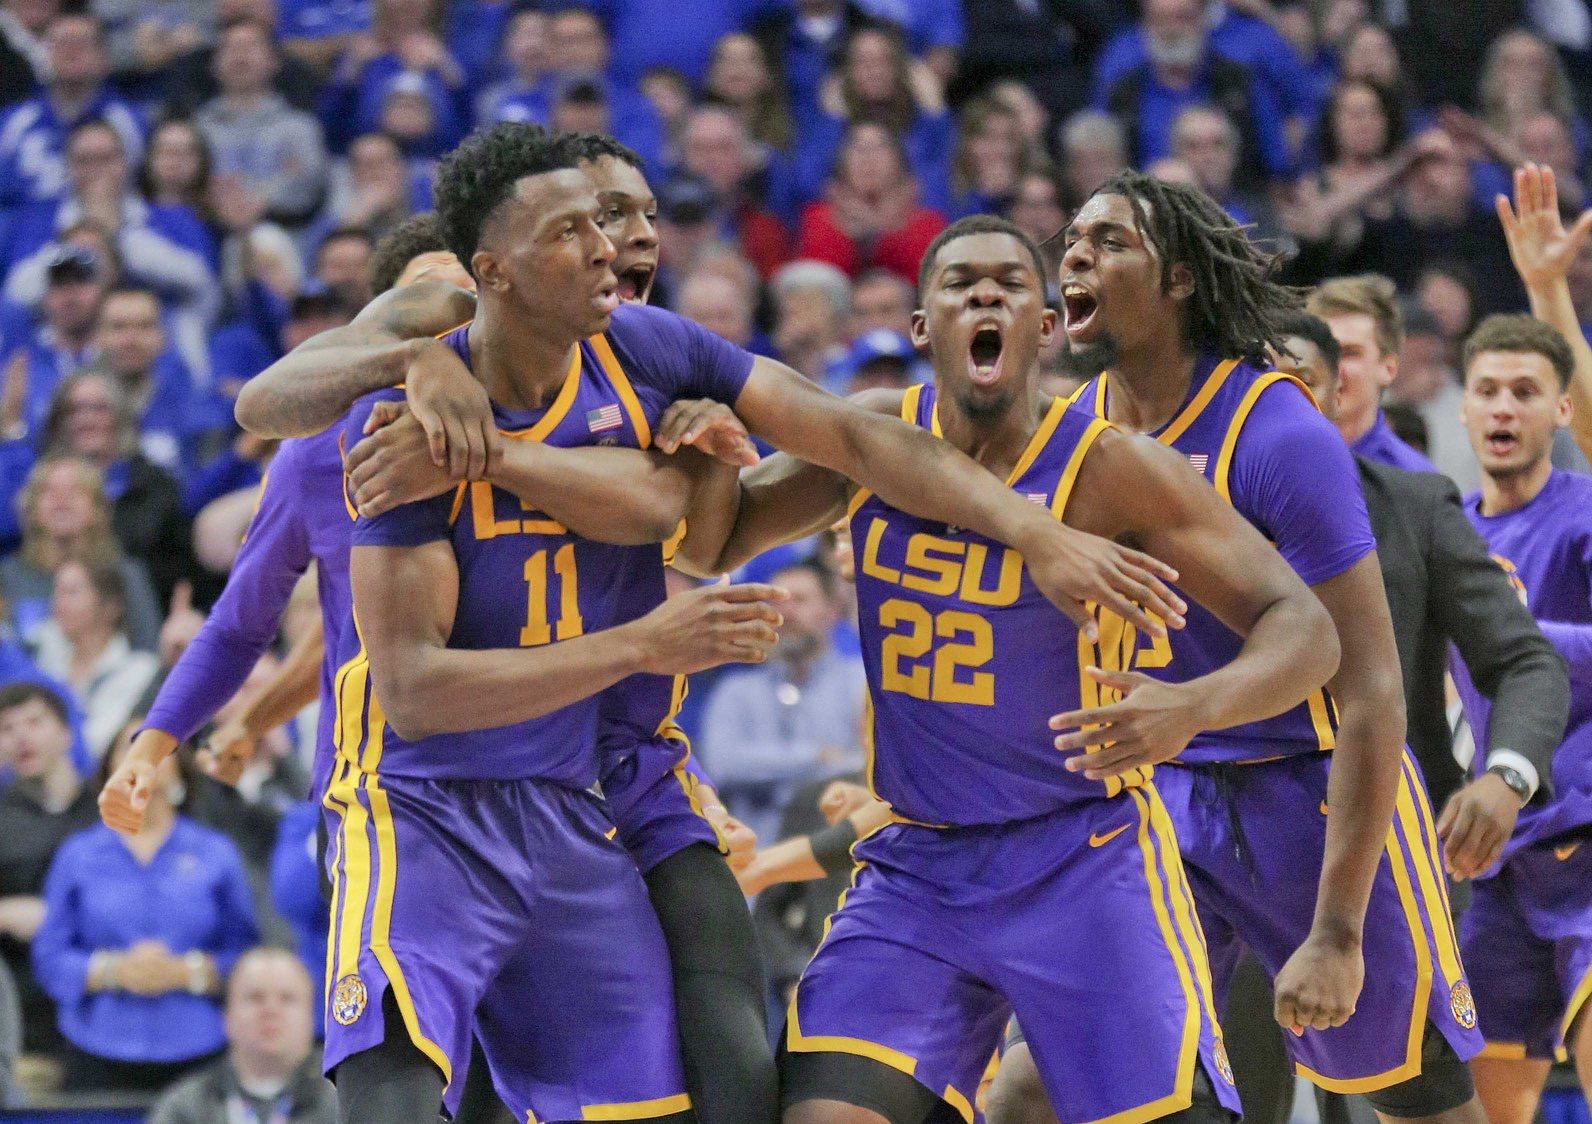 LSU stuns No. 5 Kentucky at the buzzer